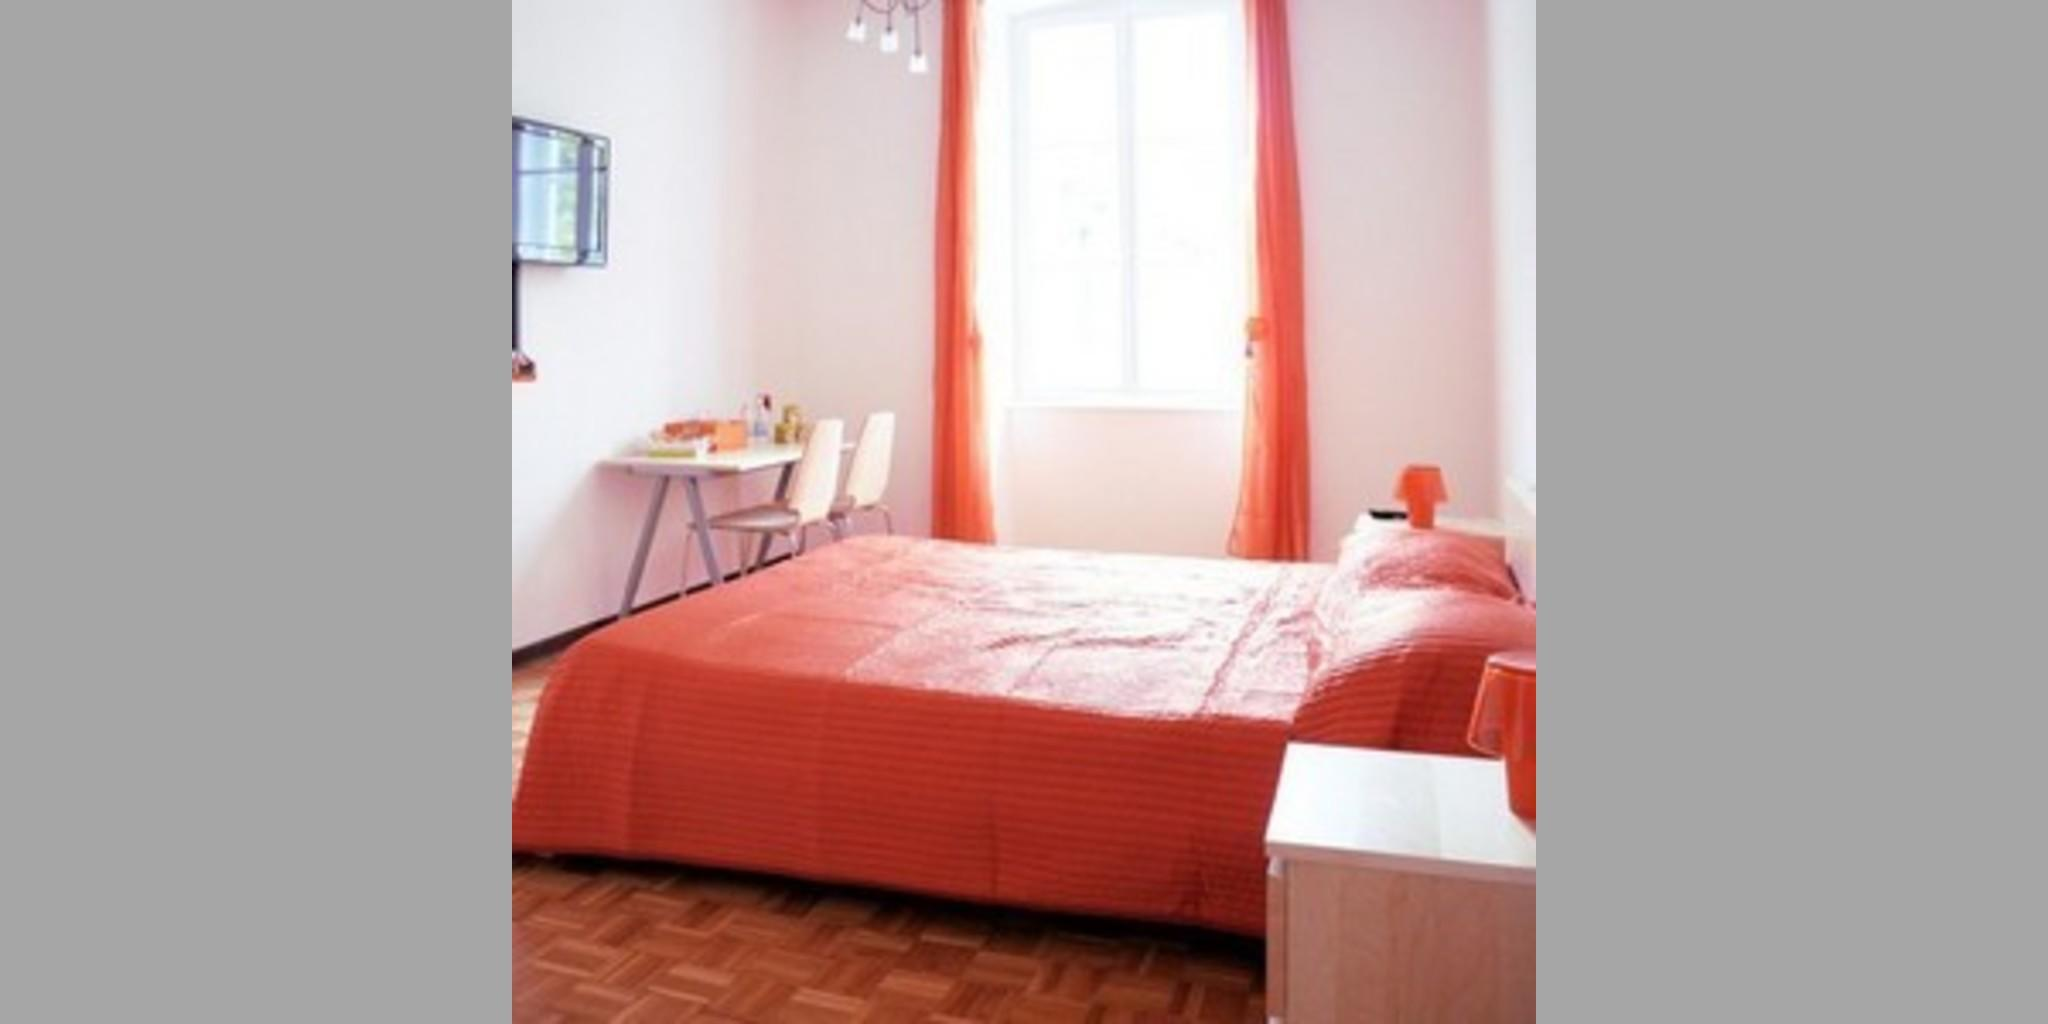 Bed & Breakfast Trieste - B&B A Trieste